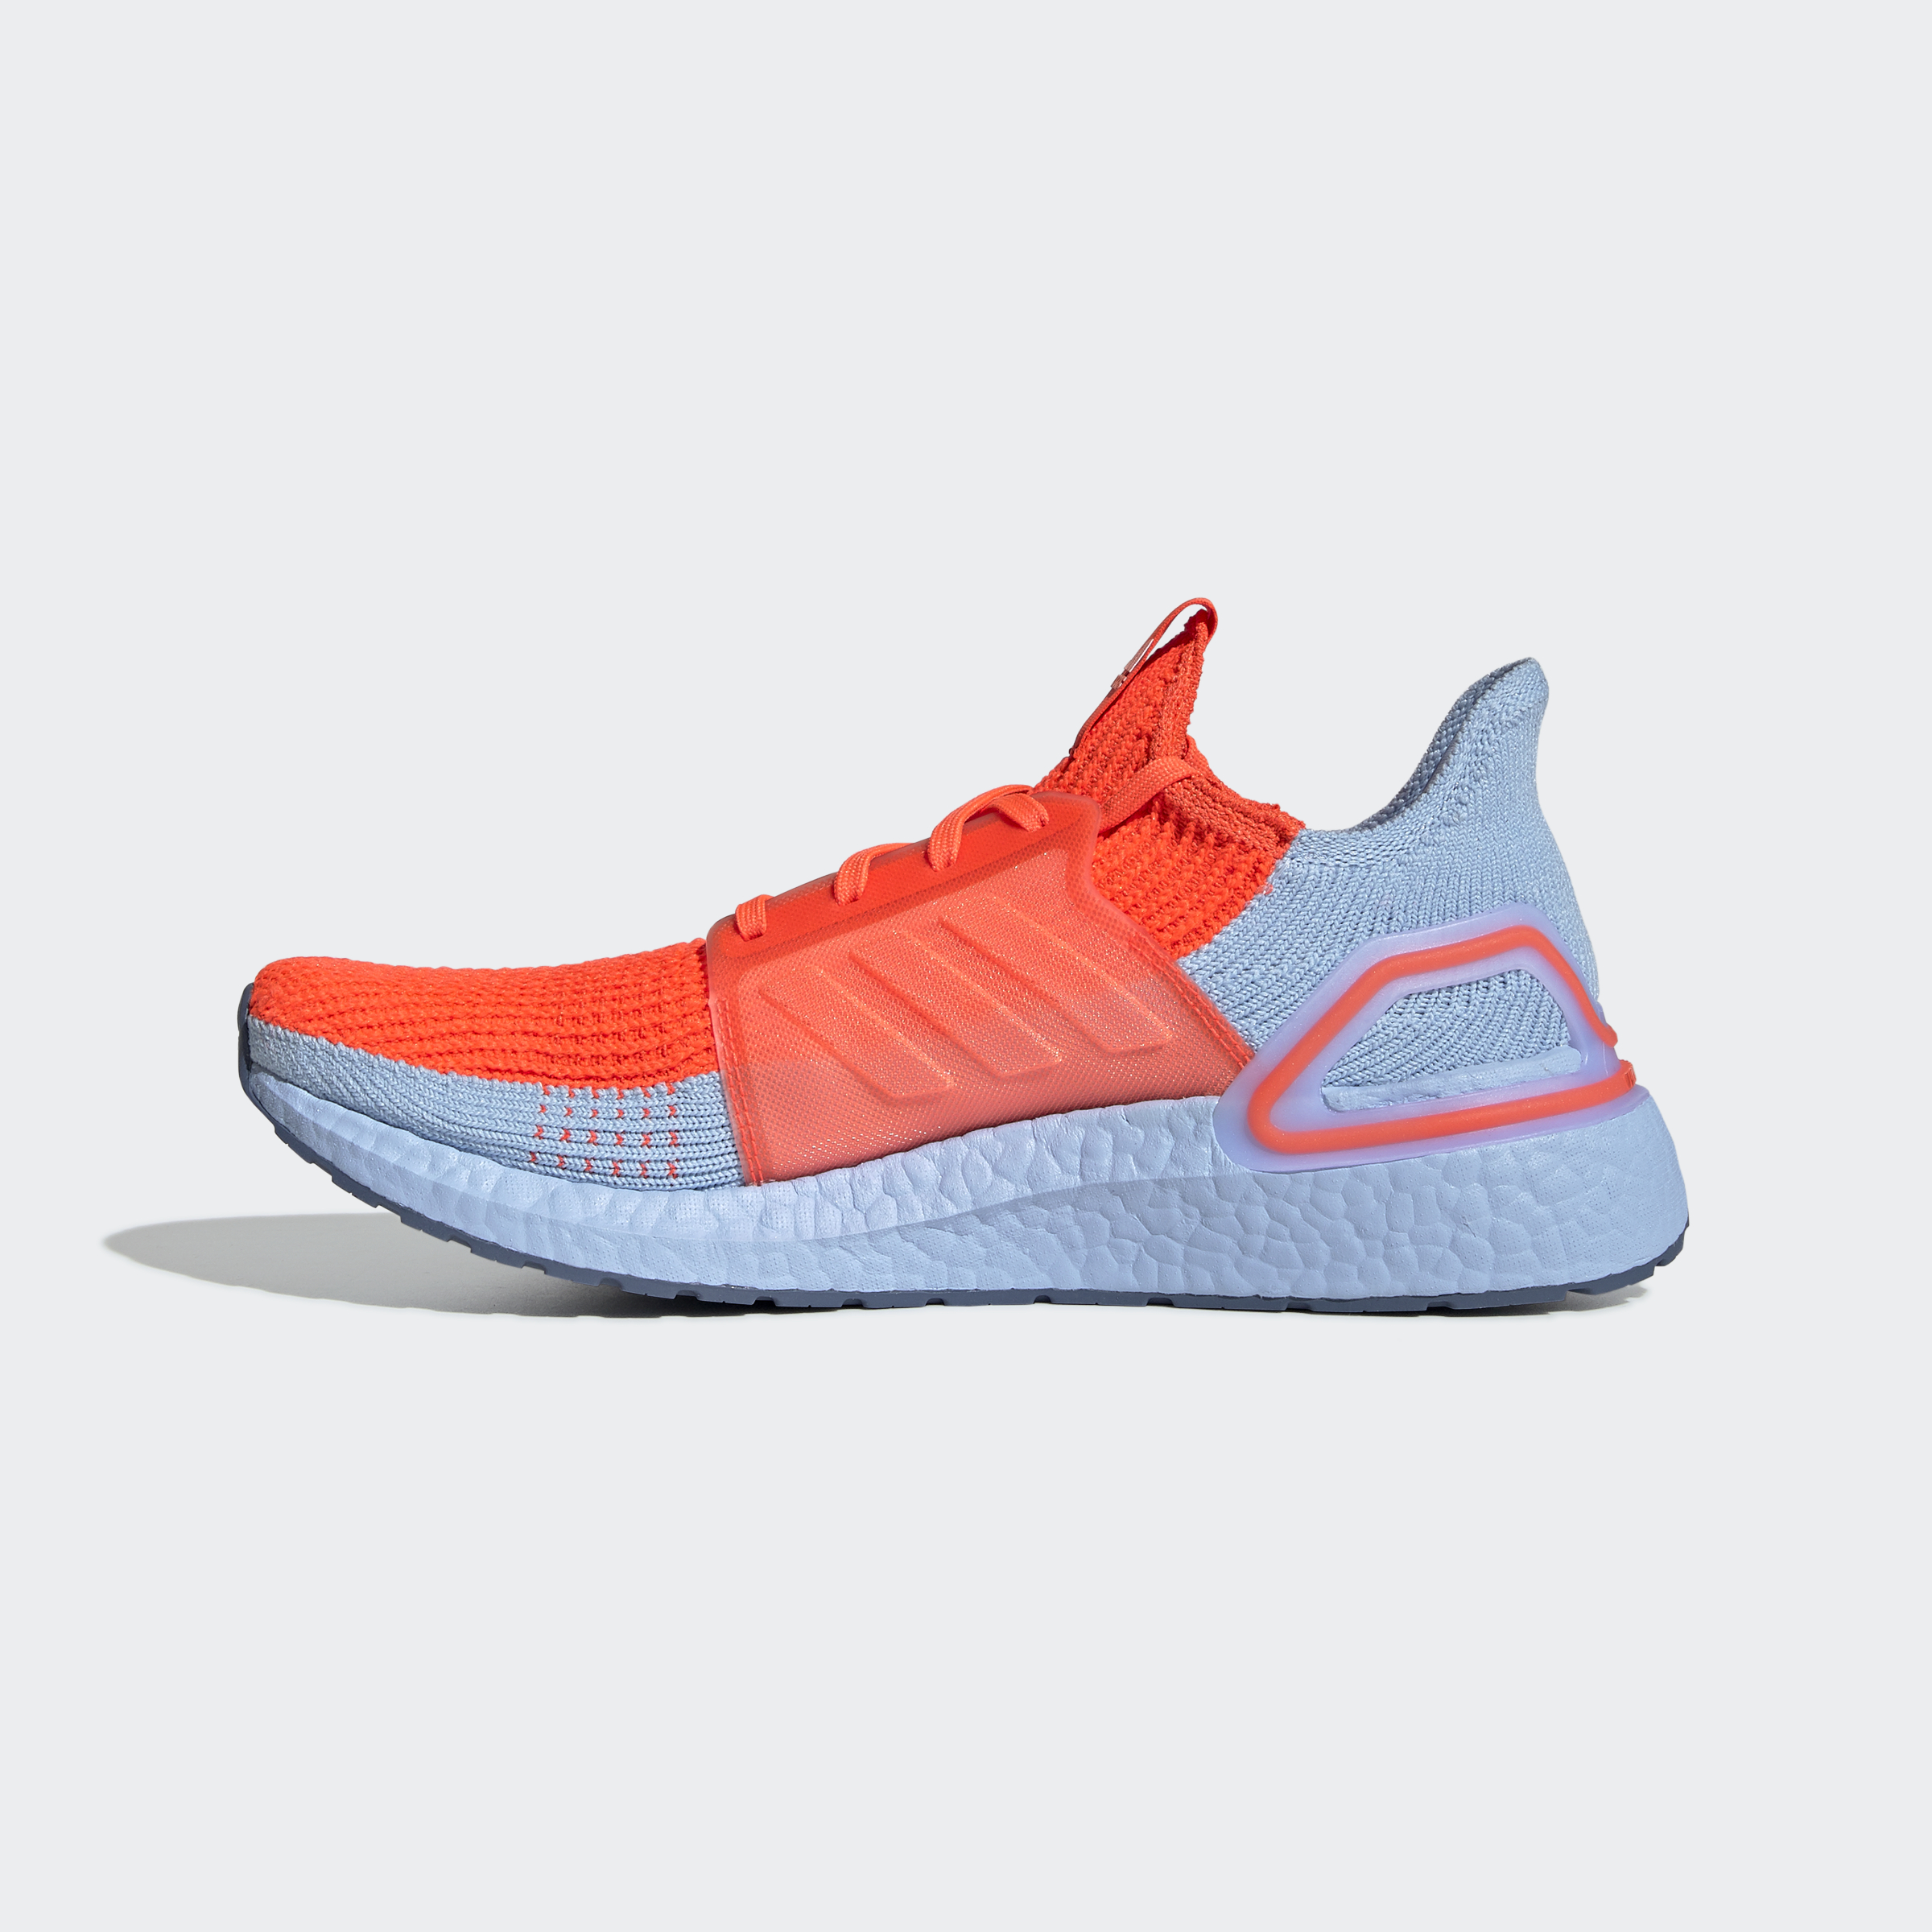 adidas-Ultraboost-19-Shoes-Athletic-amp-Sneakers thumbnail 74